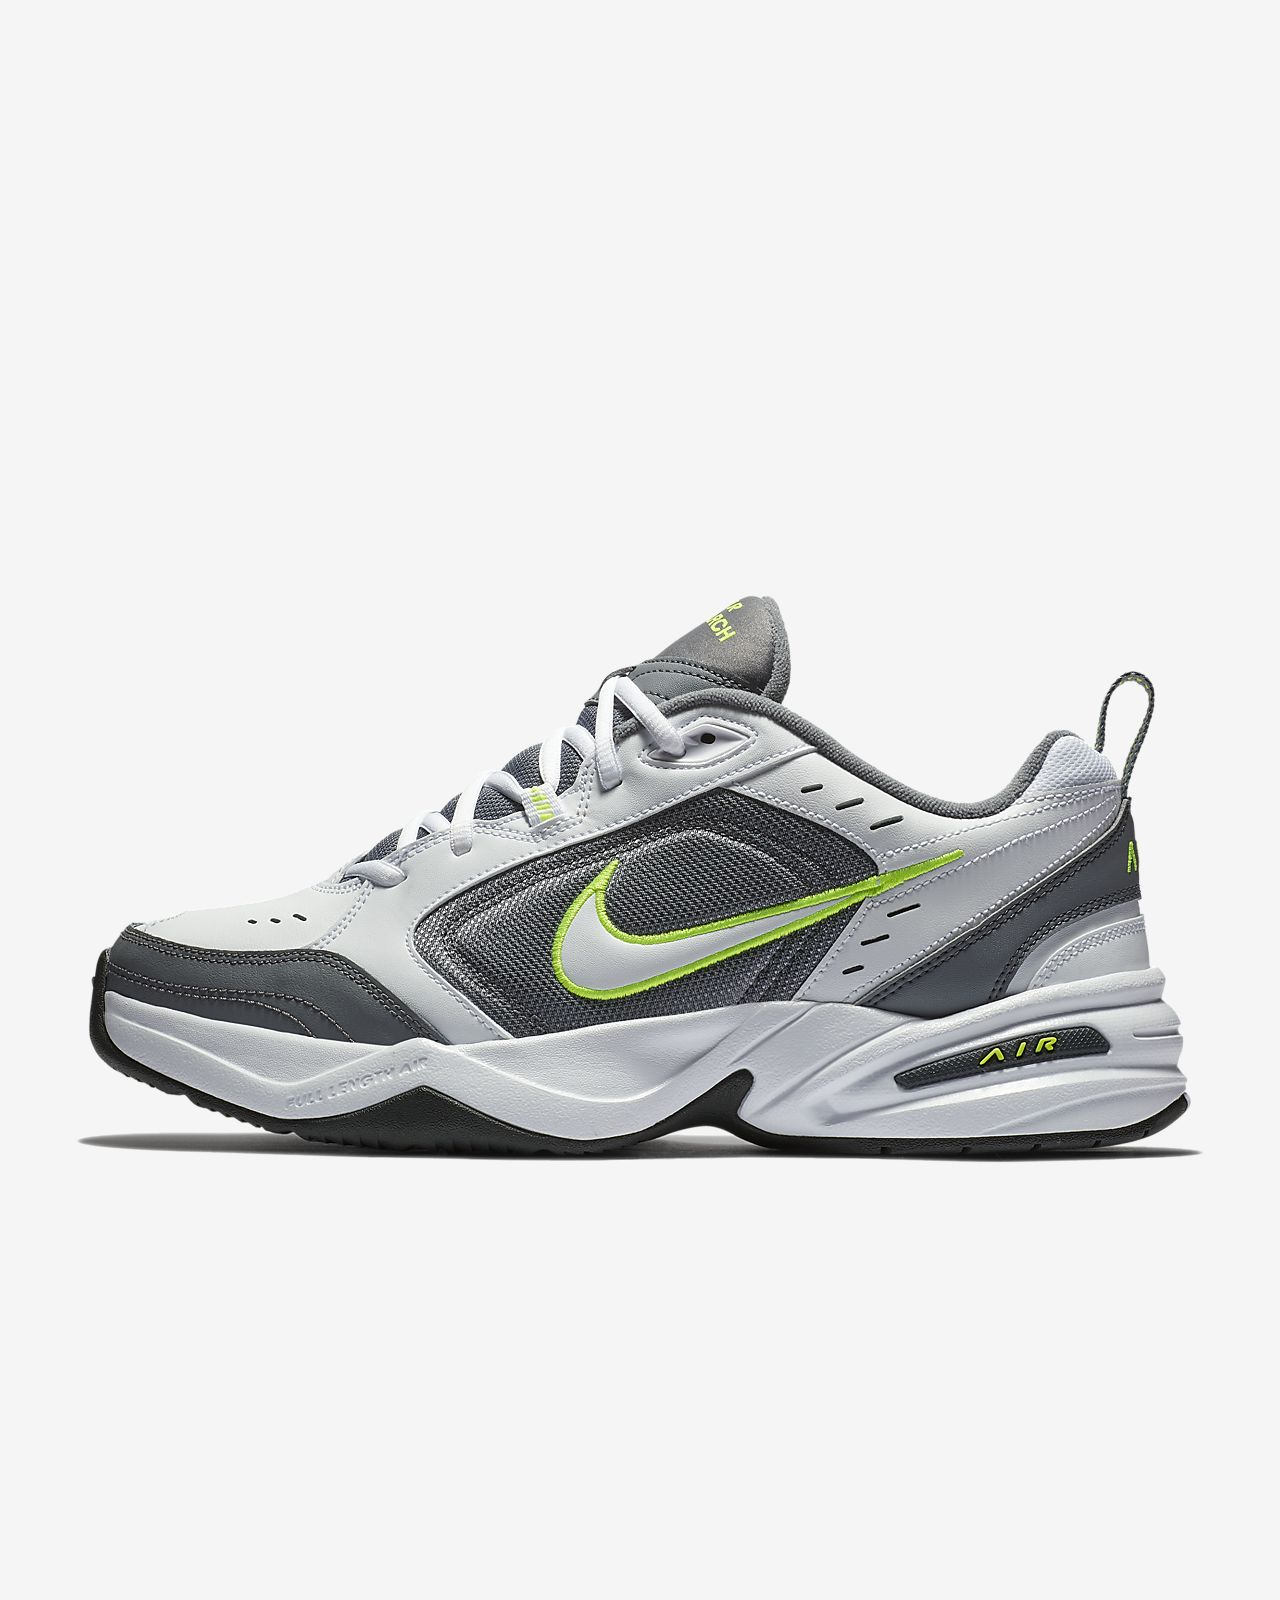 free shipping c6672 42f75 ... Nike Air Monarch IV Lifestyle Gym Shoe